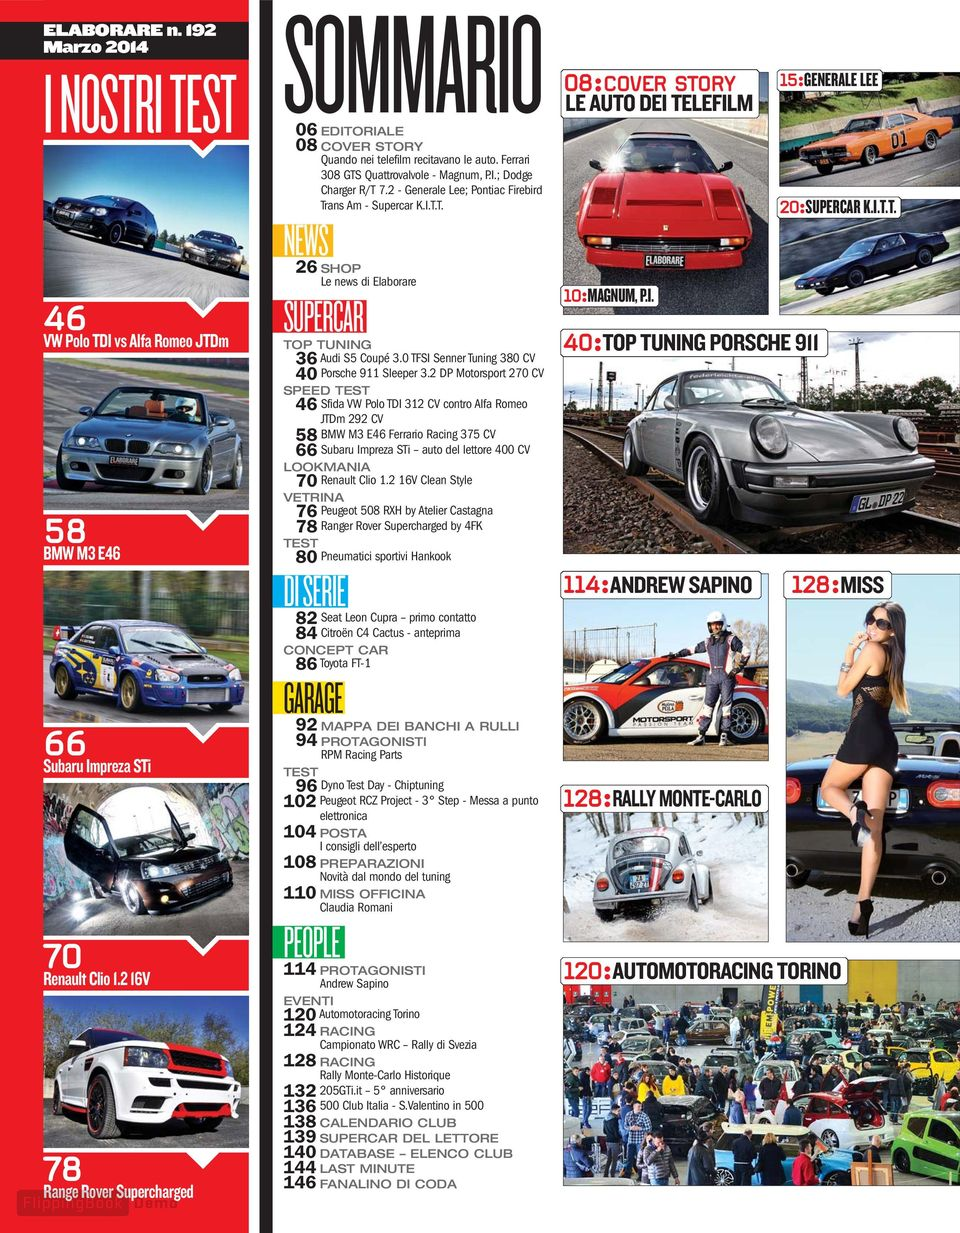 2 - Generale Lee; Pontiac Firebird Trans Am - Supercar K.I.T.T. NEWS 26 SHOP Le news di Elaborare SUPERCAR TOP TUNING 36 Audi S5 Coupé 3.0 TFSI Senner Tuning 380 CV 40 Porsche 911 Sleeper 3.